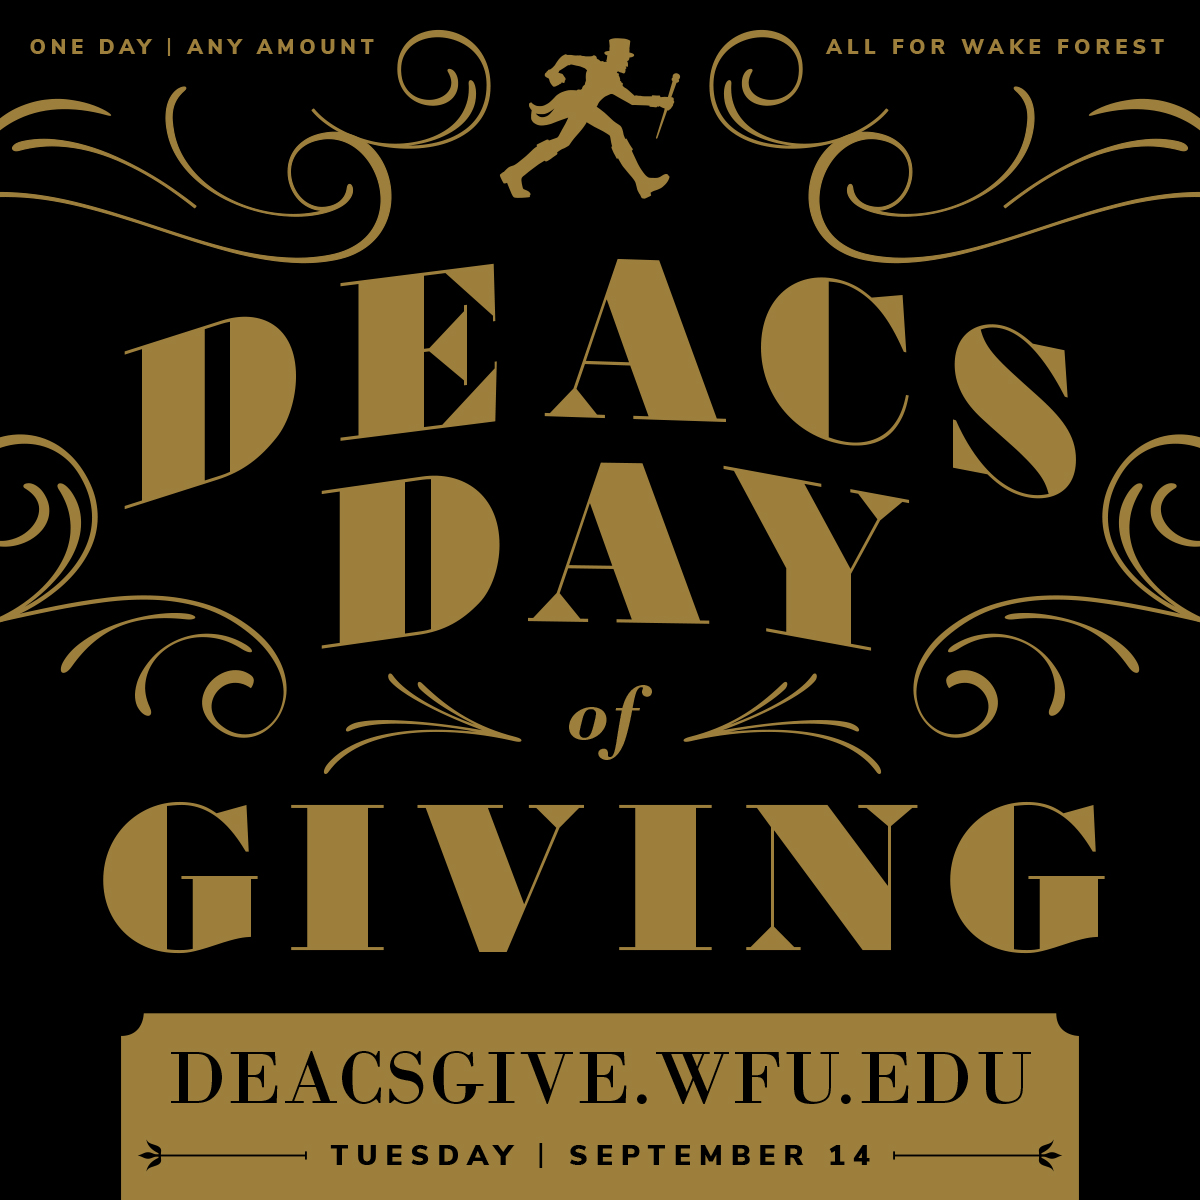 Proudly made my gift to a number of areas @WakeForest that are important to me: @SOTOGAB  @FirstGen_WF  Chaplain's Emergency Fund @WFUAlumni Class of 2006 Reunion Campaign Who will you support today? #DeacsGive @WFUGiving https://t.co/TbRMi3sA5r